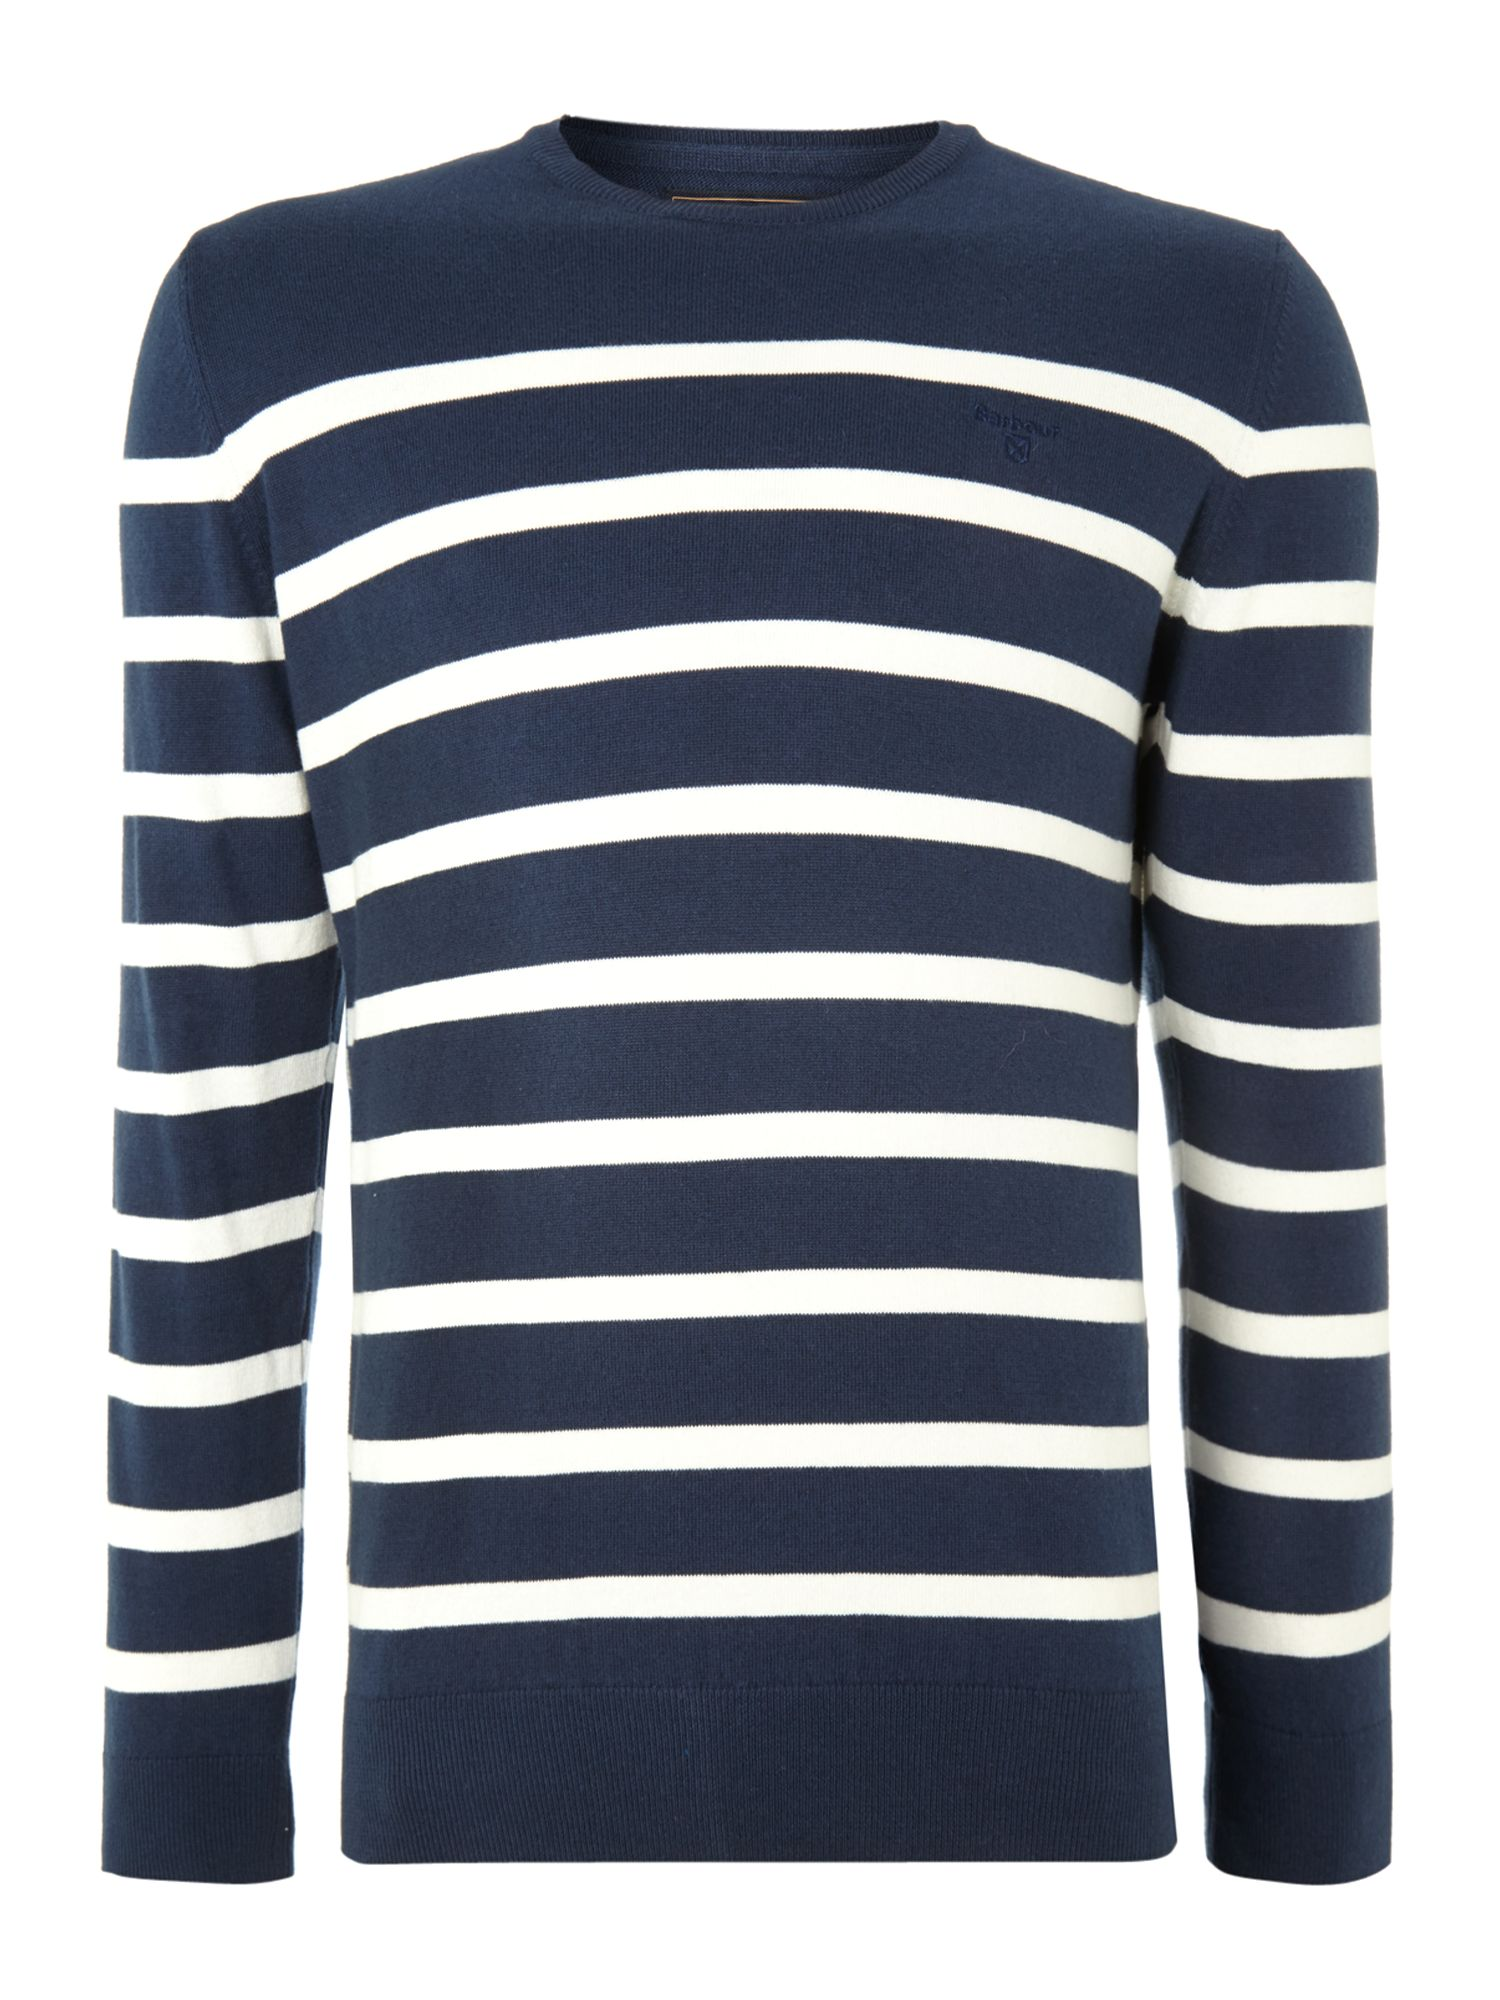 Cotton cashmere striped jumper